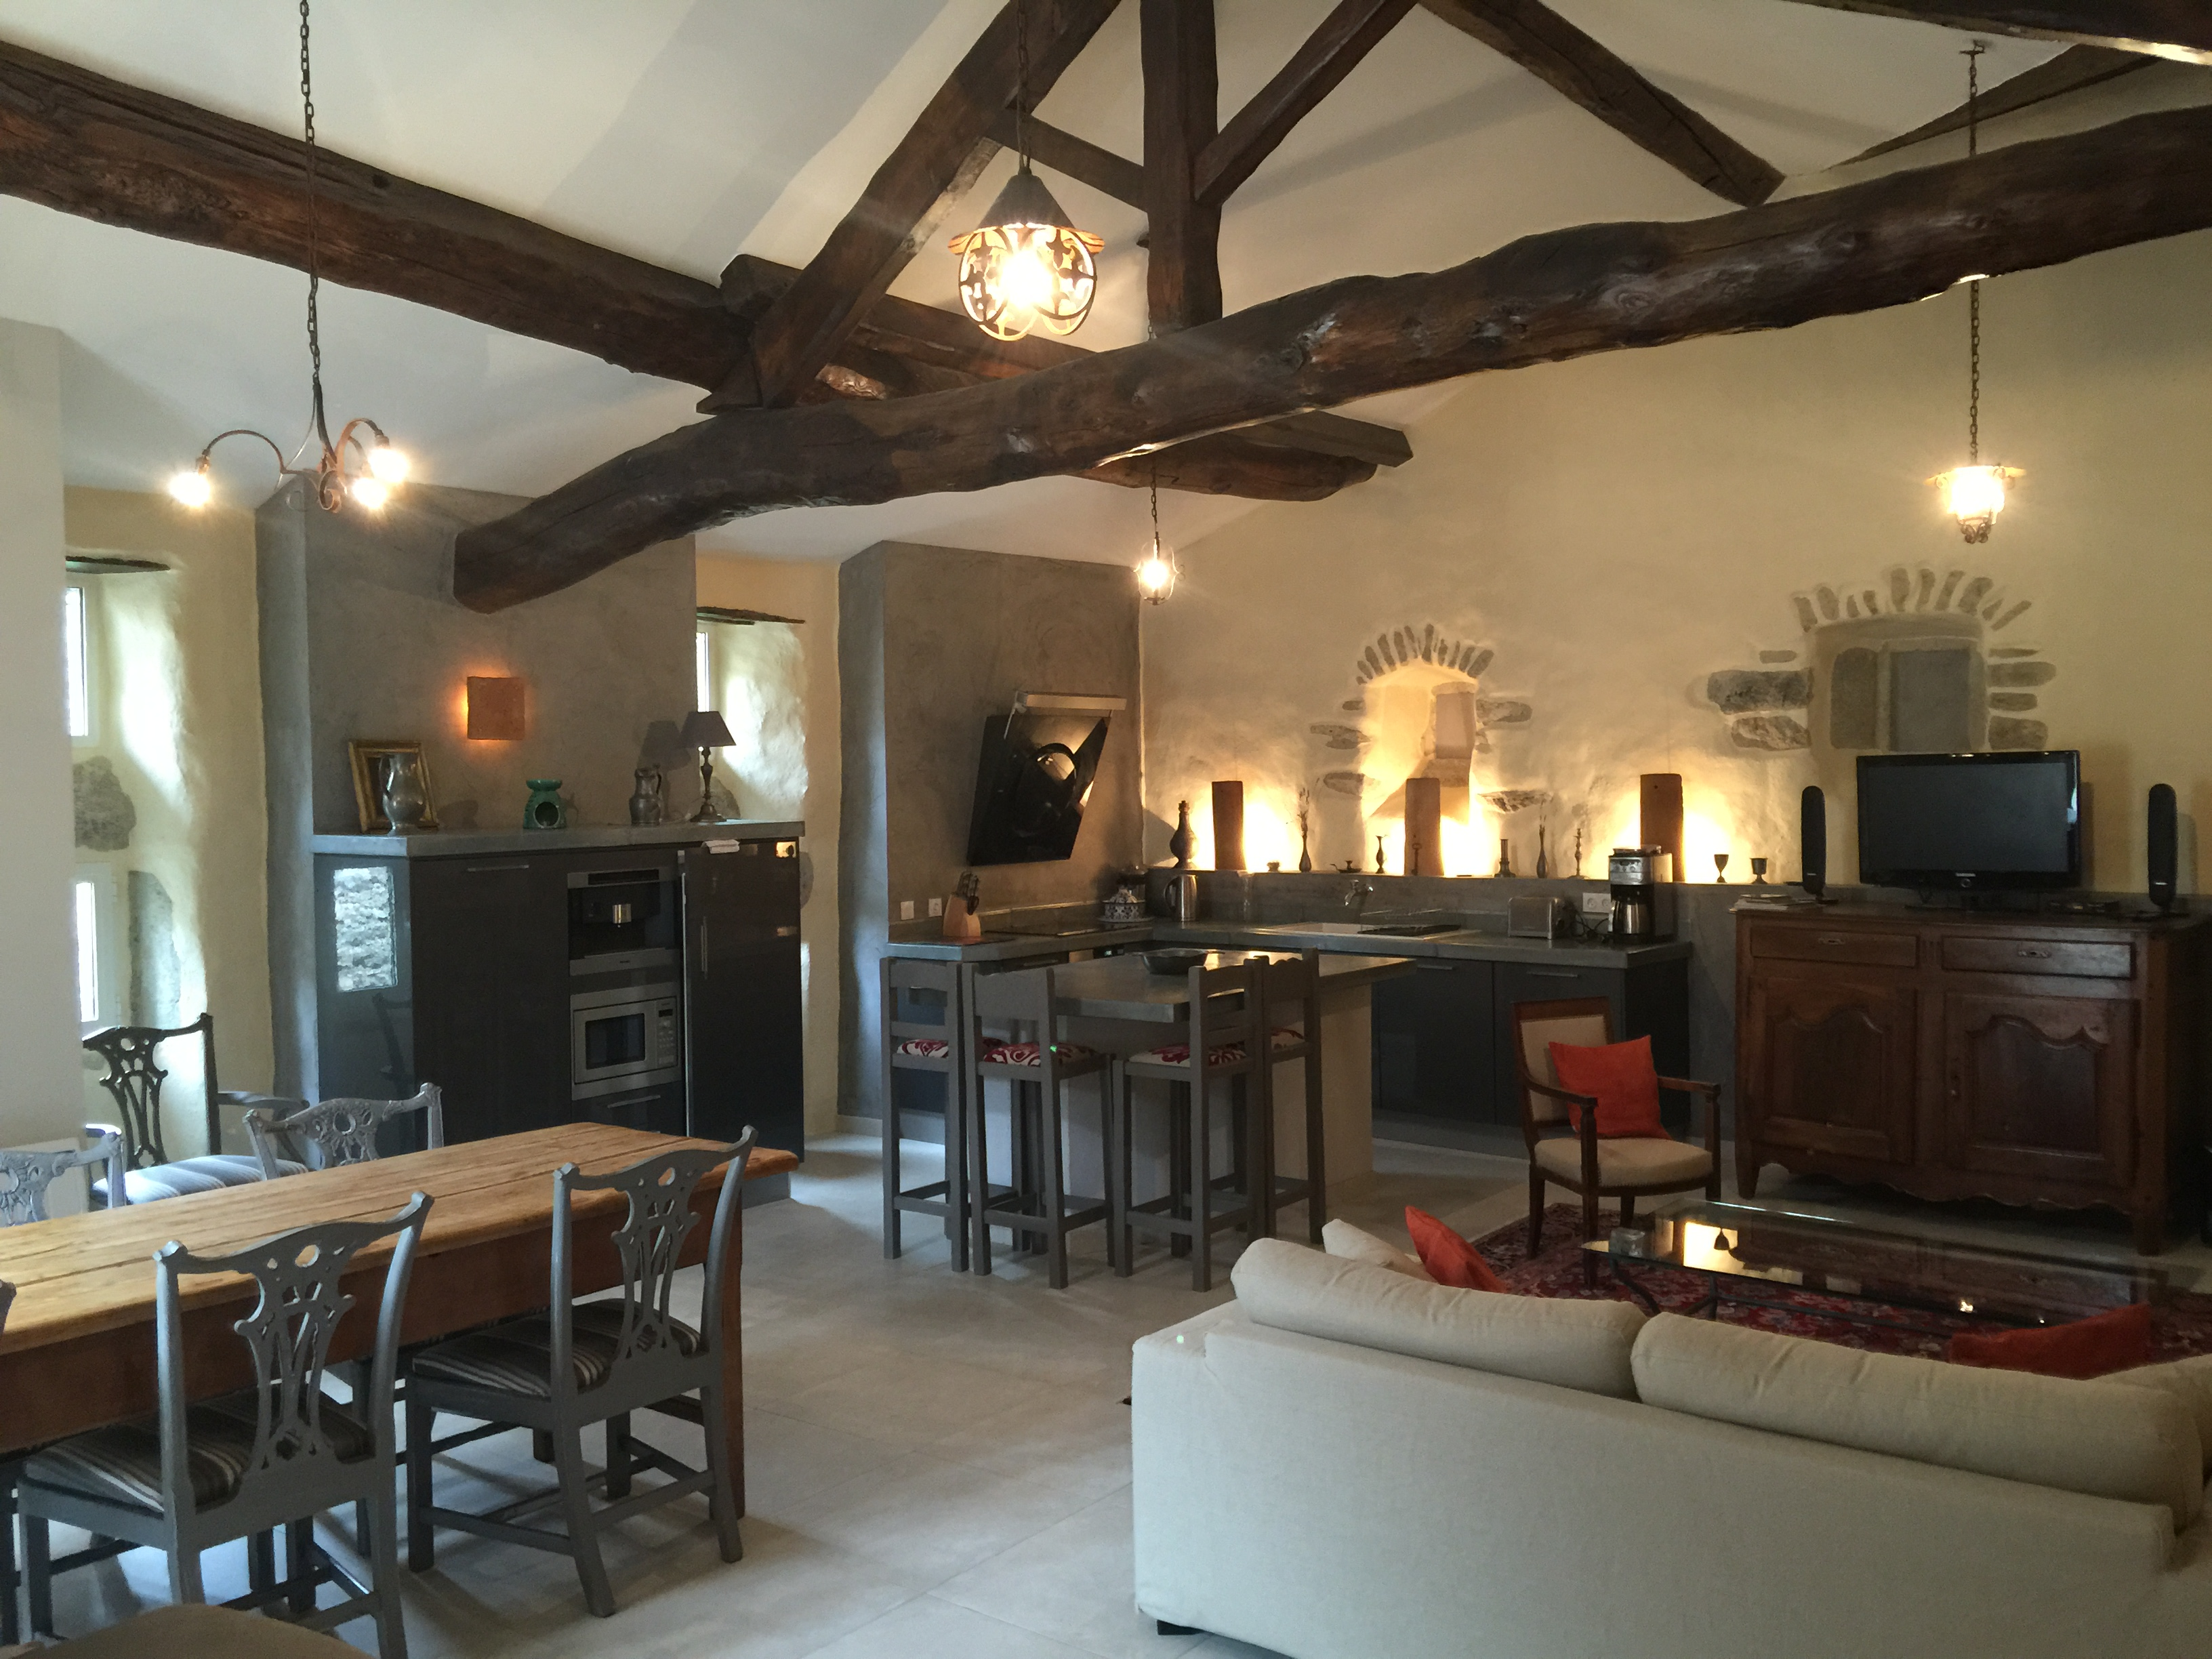 Appartement-cornier-salon-chateau-rode-aumessas-location-vacances-cevennes-gard